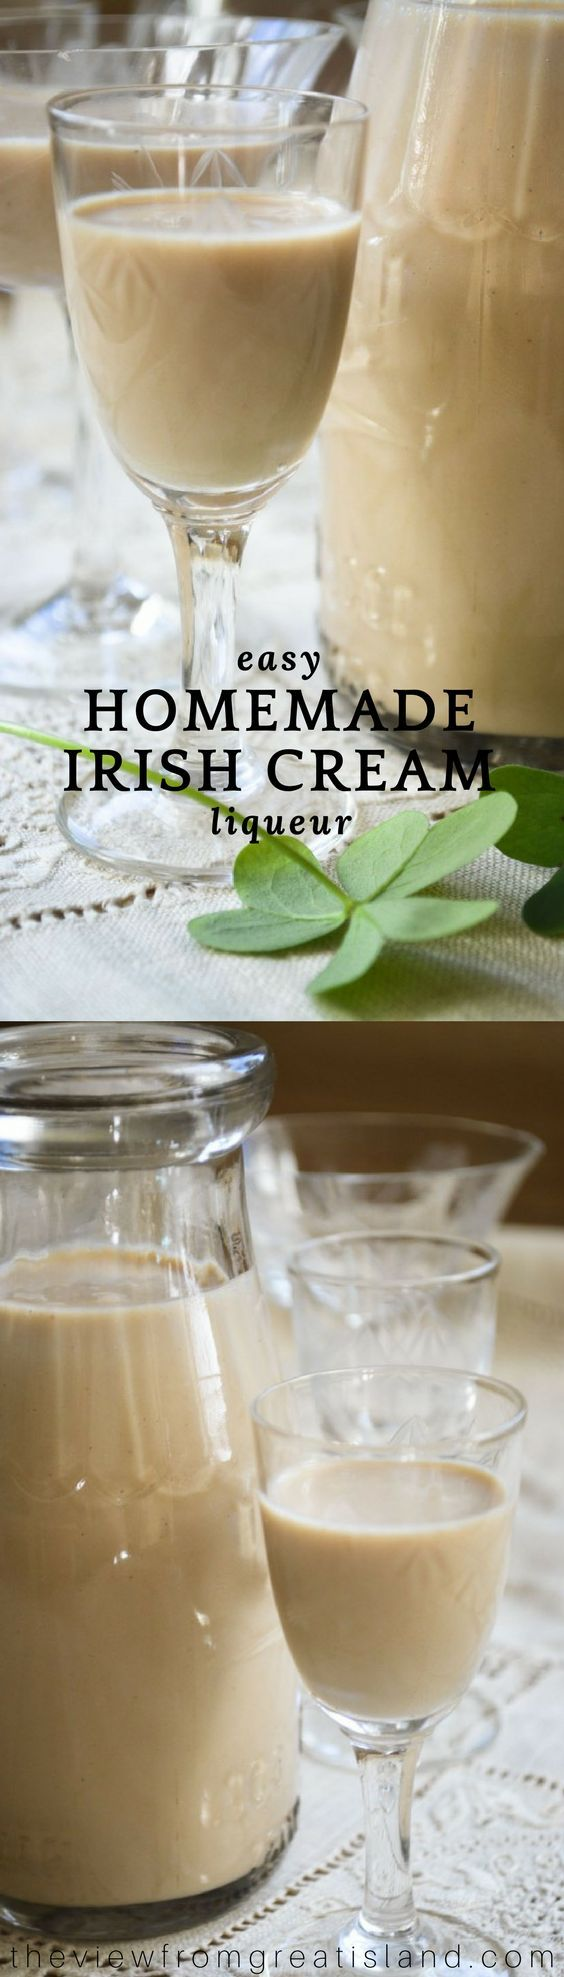 How to Make Homemade Irish Cream ~ this diy Irish Cream is a perfect copy cat of one of my favorite liqueurs.  It's dangerously delicious, and ridiculously easy to make.  Mix up a batch for for your friends this weekend! #cocktails #irishcreme #homemadeli (dessert ideas for party vodka)